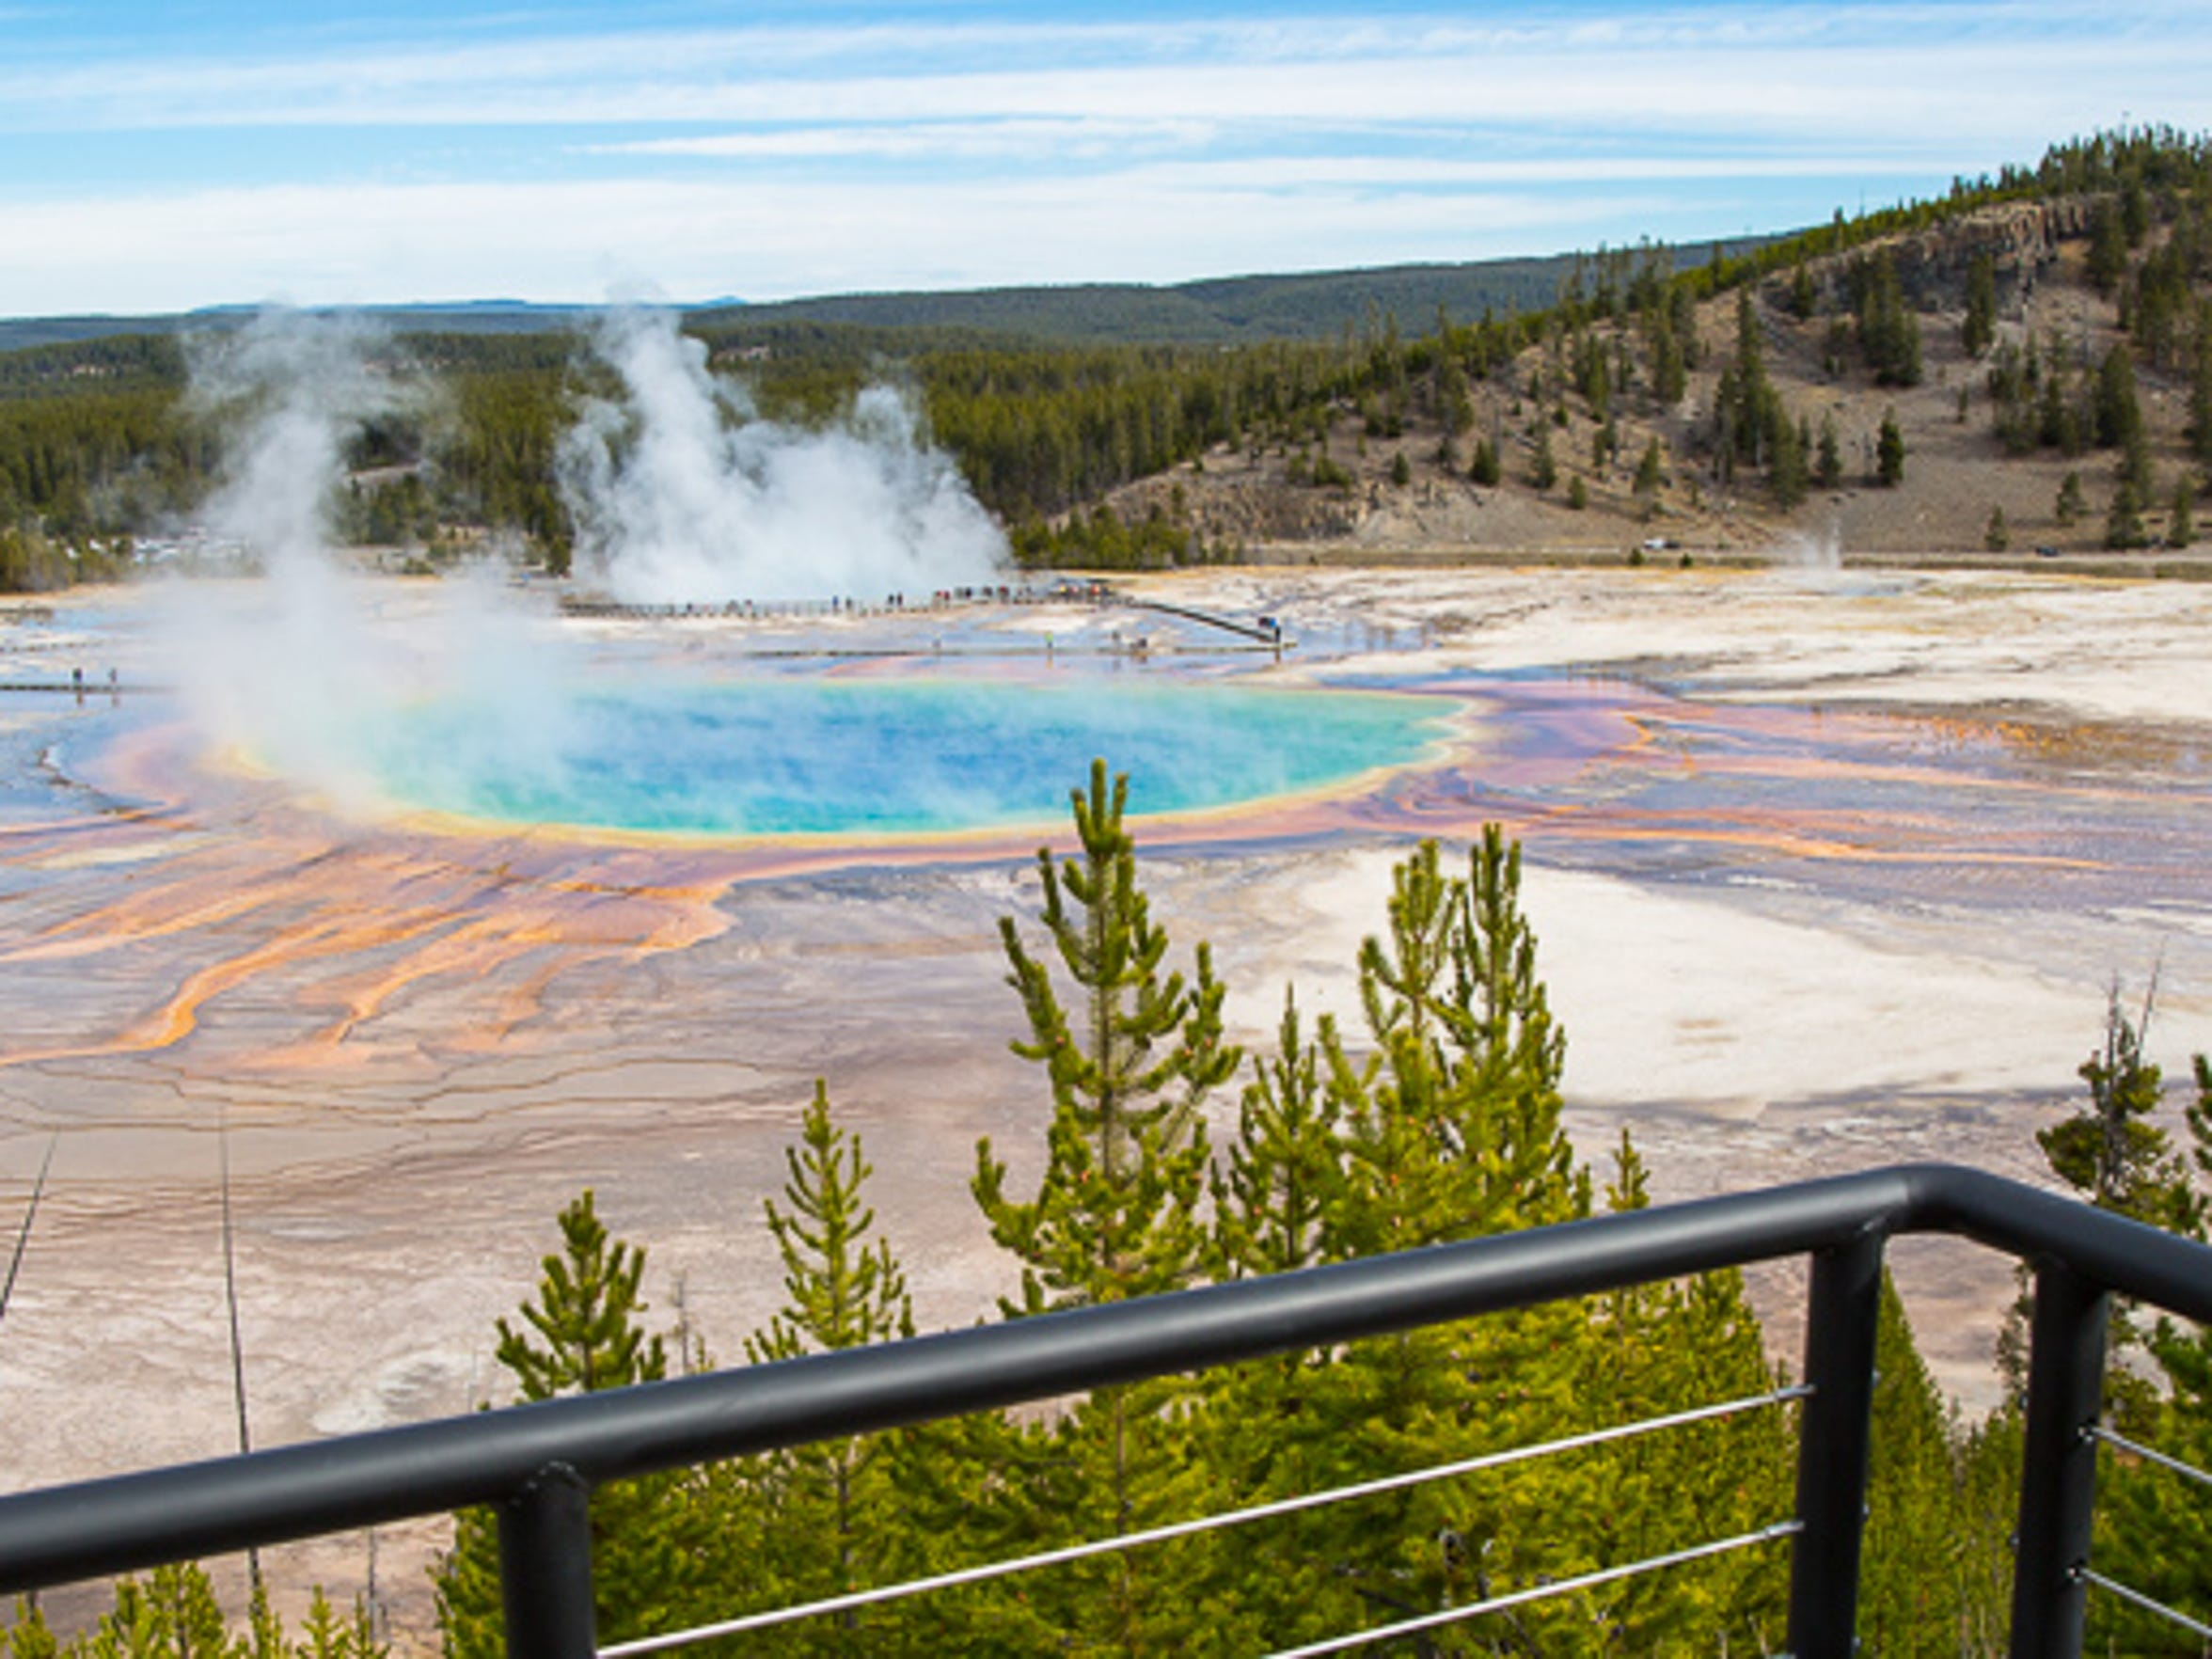 The new observation deck overlooking Grand Prismatic Spring is expected to open in July.